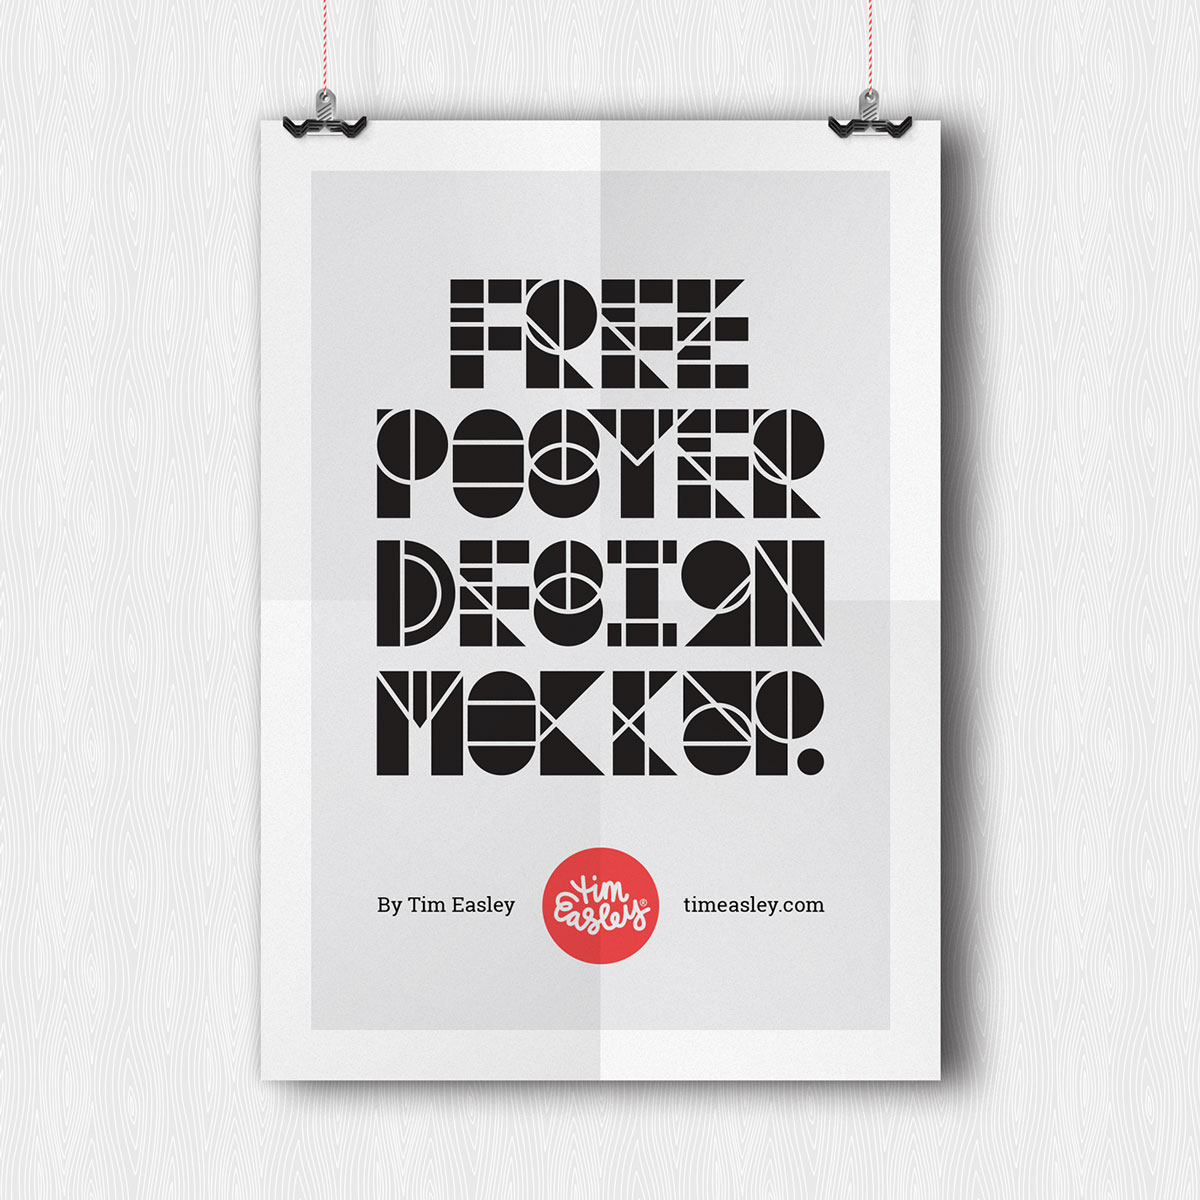 Multipurpose-Poster-Mockups-For-Your-Creative-Poster-Designs-600-1